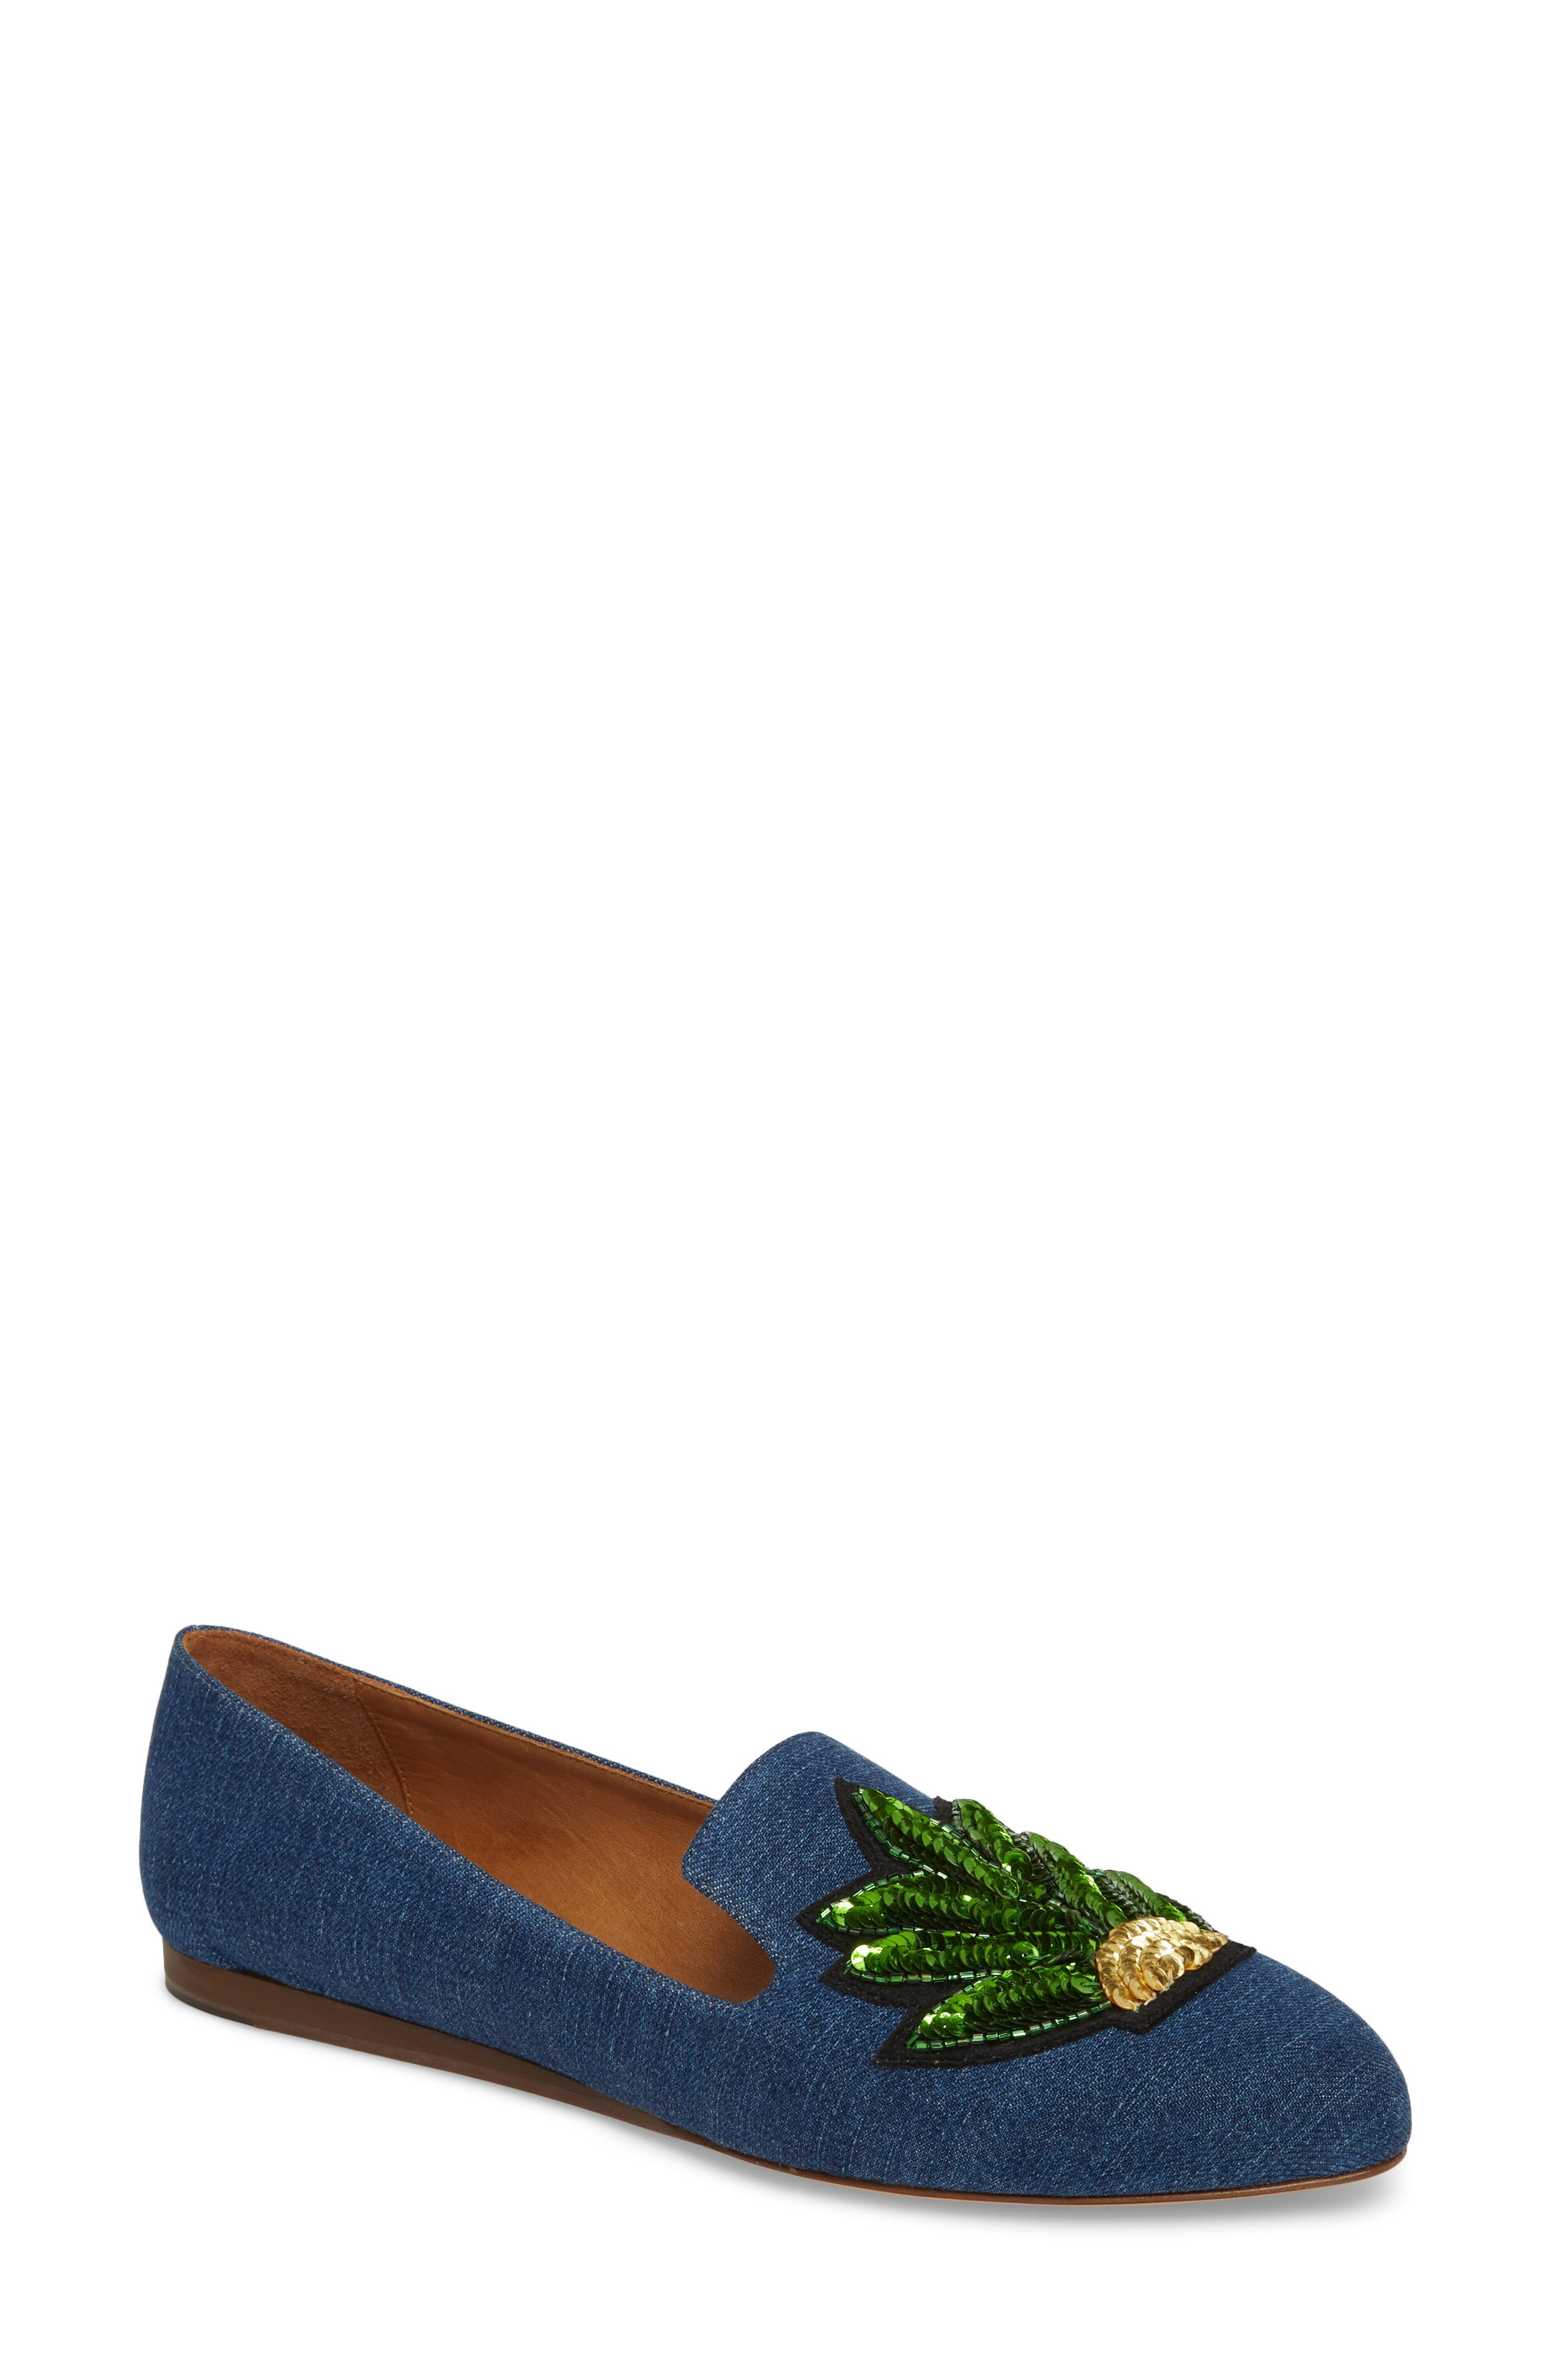 Griffin Pointy Toe Loafer,                         Main,                         color, Chambray